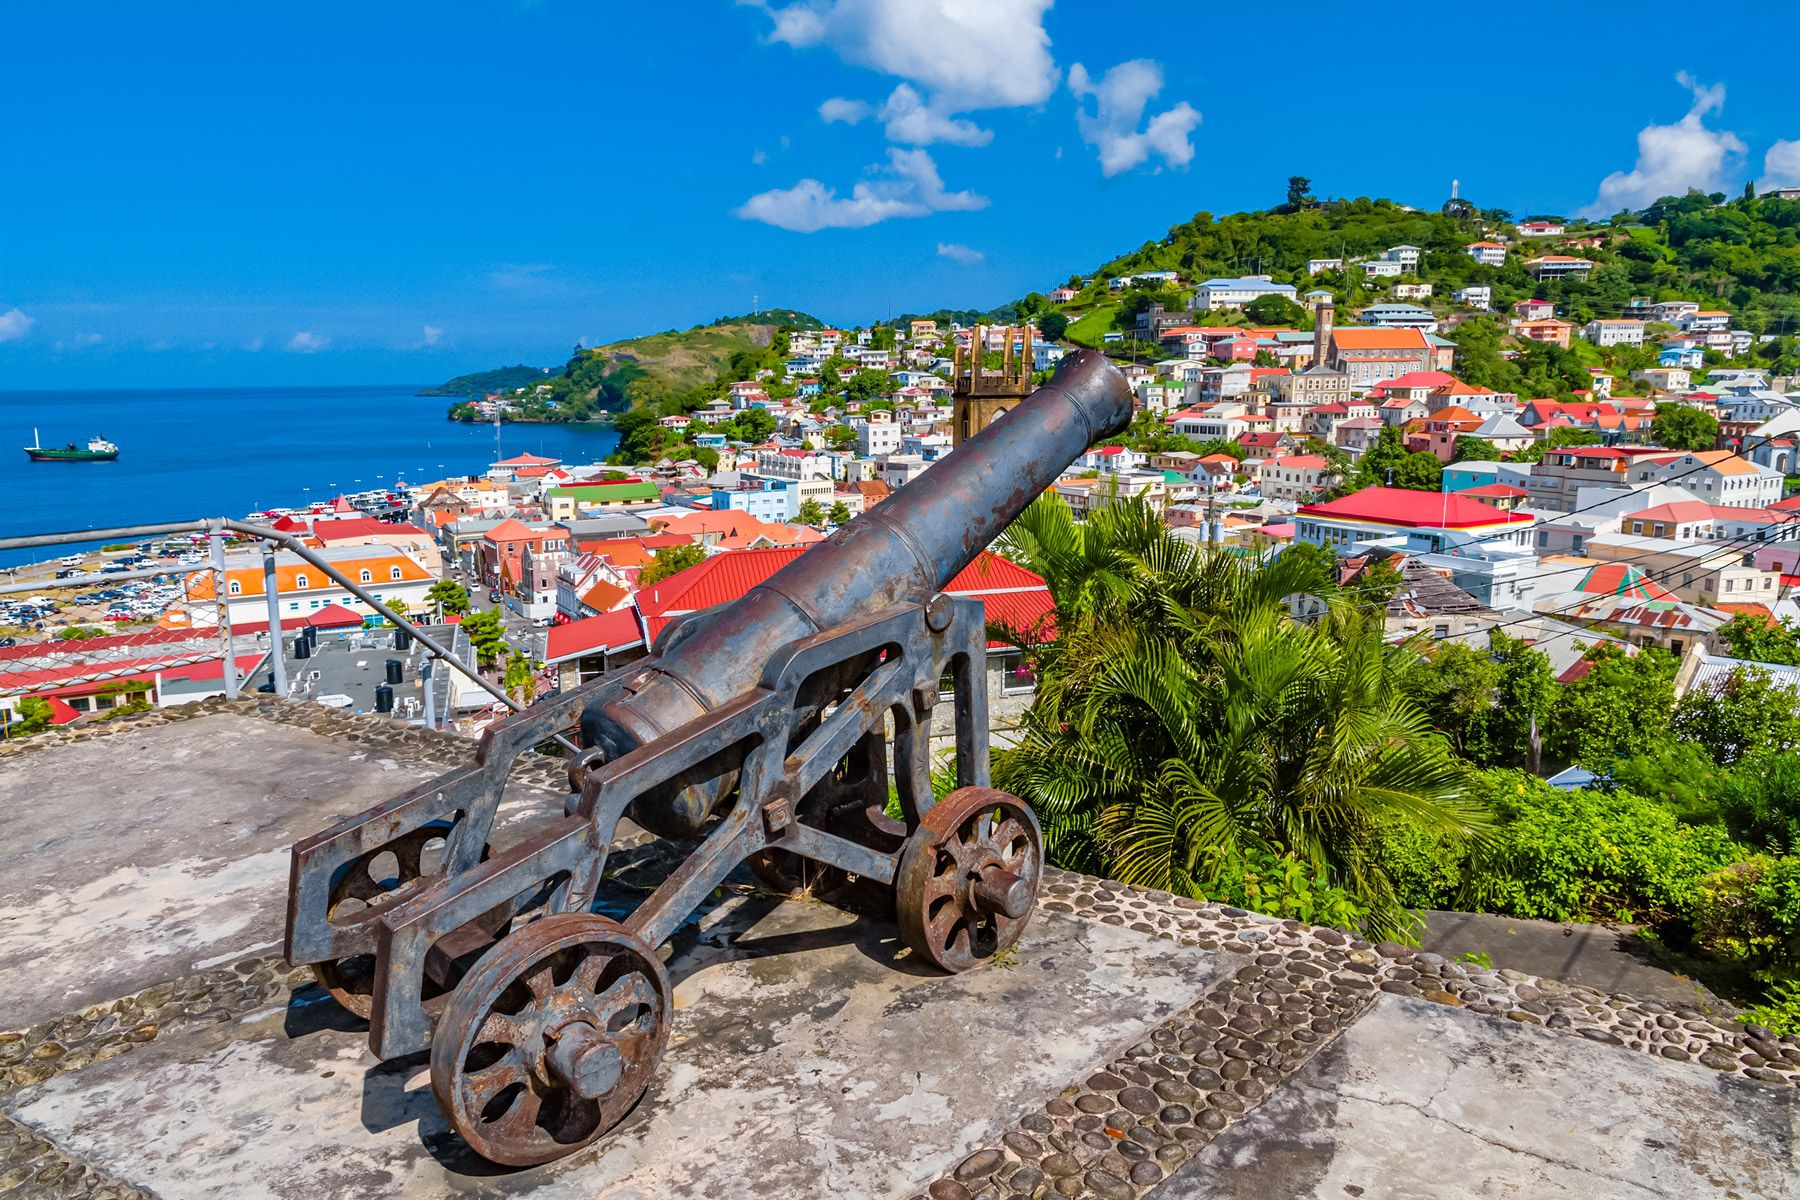 Top 55 Things To Do In Grenada For An Unforgettable Vacation